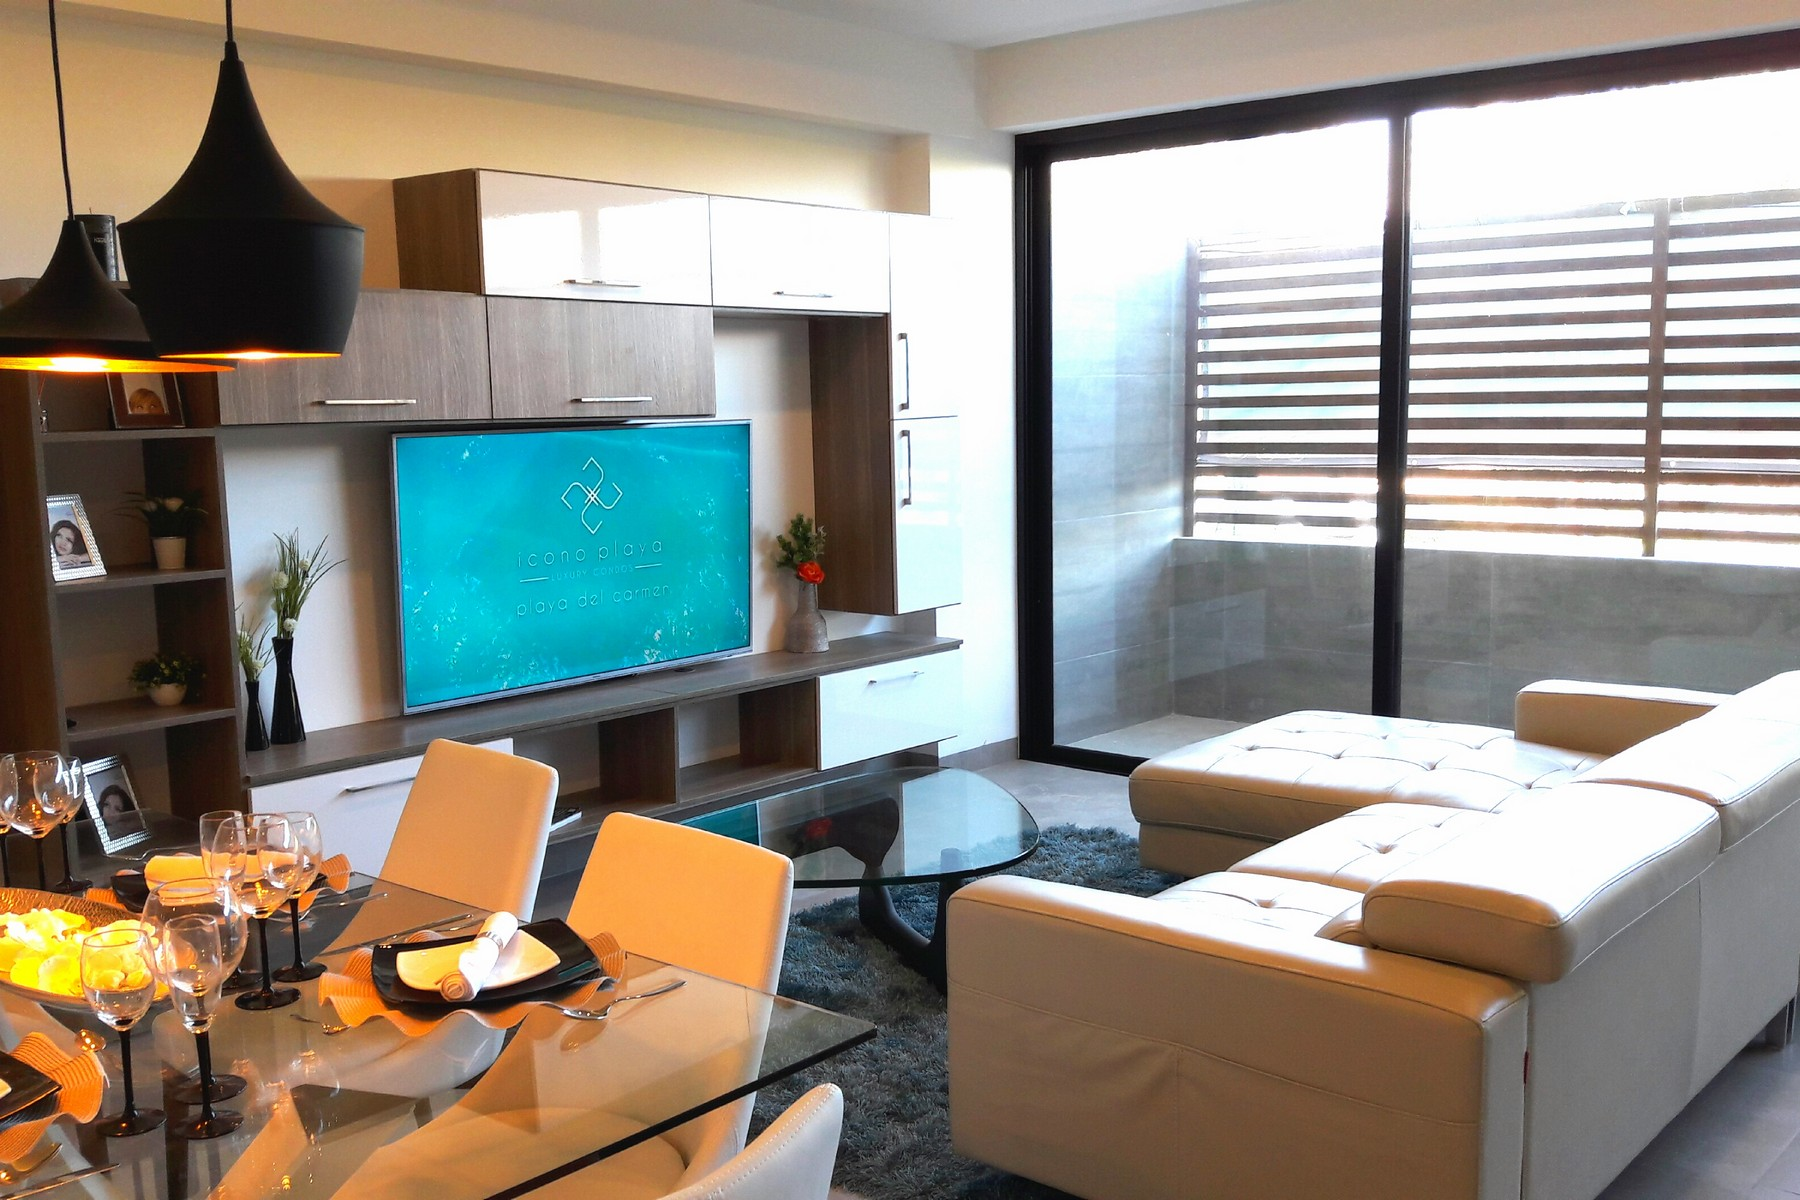 Additional photo for property listing at SPACIOUS APARTMENTS IN LUXURIOUS AND WELL LOCATED NEW BUILDING Spacious apartments in luxurious and well located new building 6th North Street Playa Del Carmen, Quintana Roo 77710 Mexico